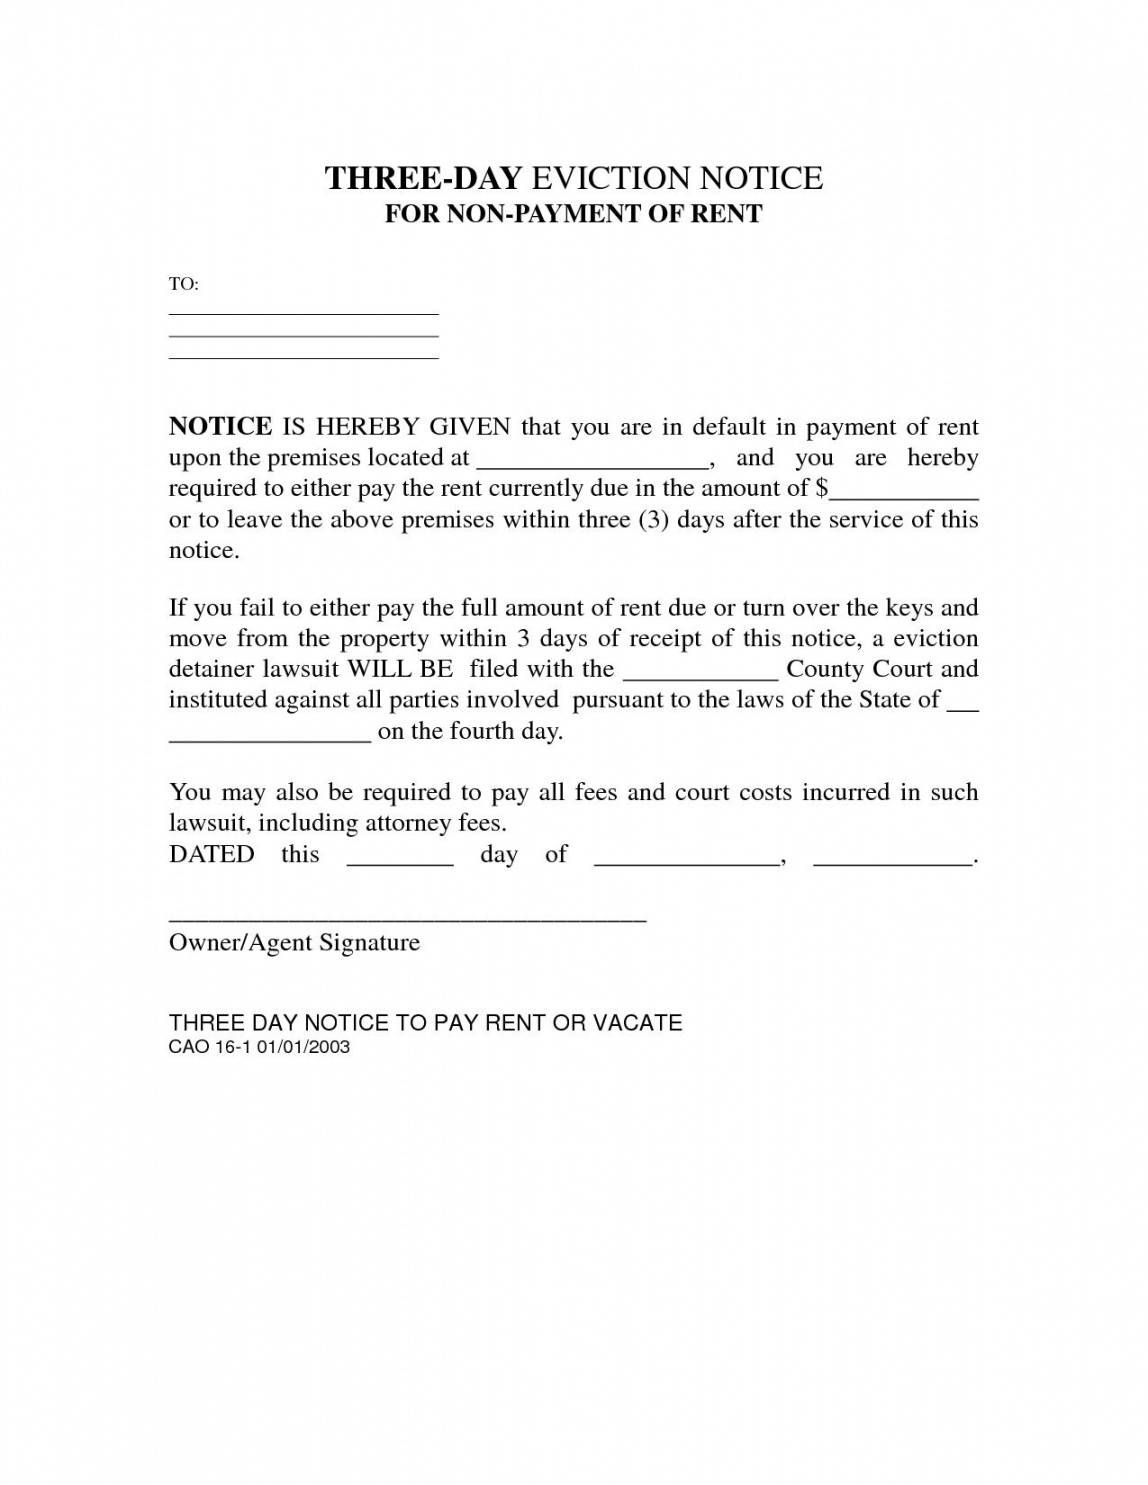 Get Our Sample Of Utah Eviction Notice Template Eviction Notice Being A Landlord Utah